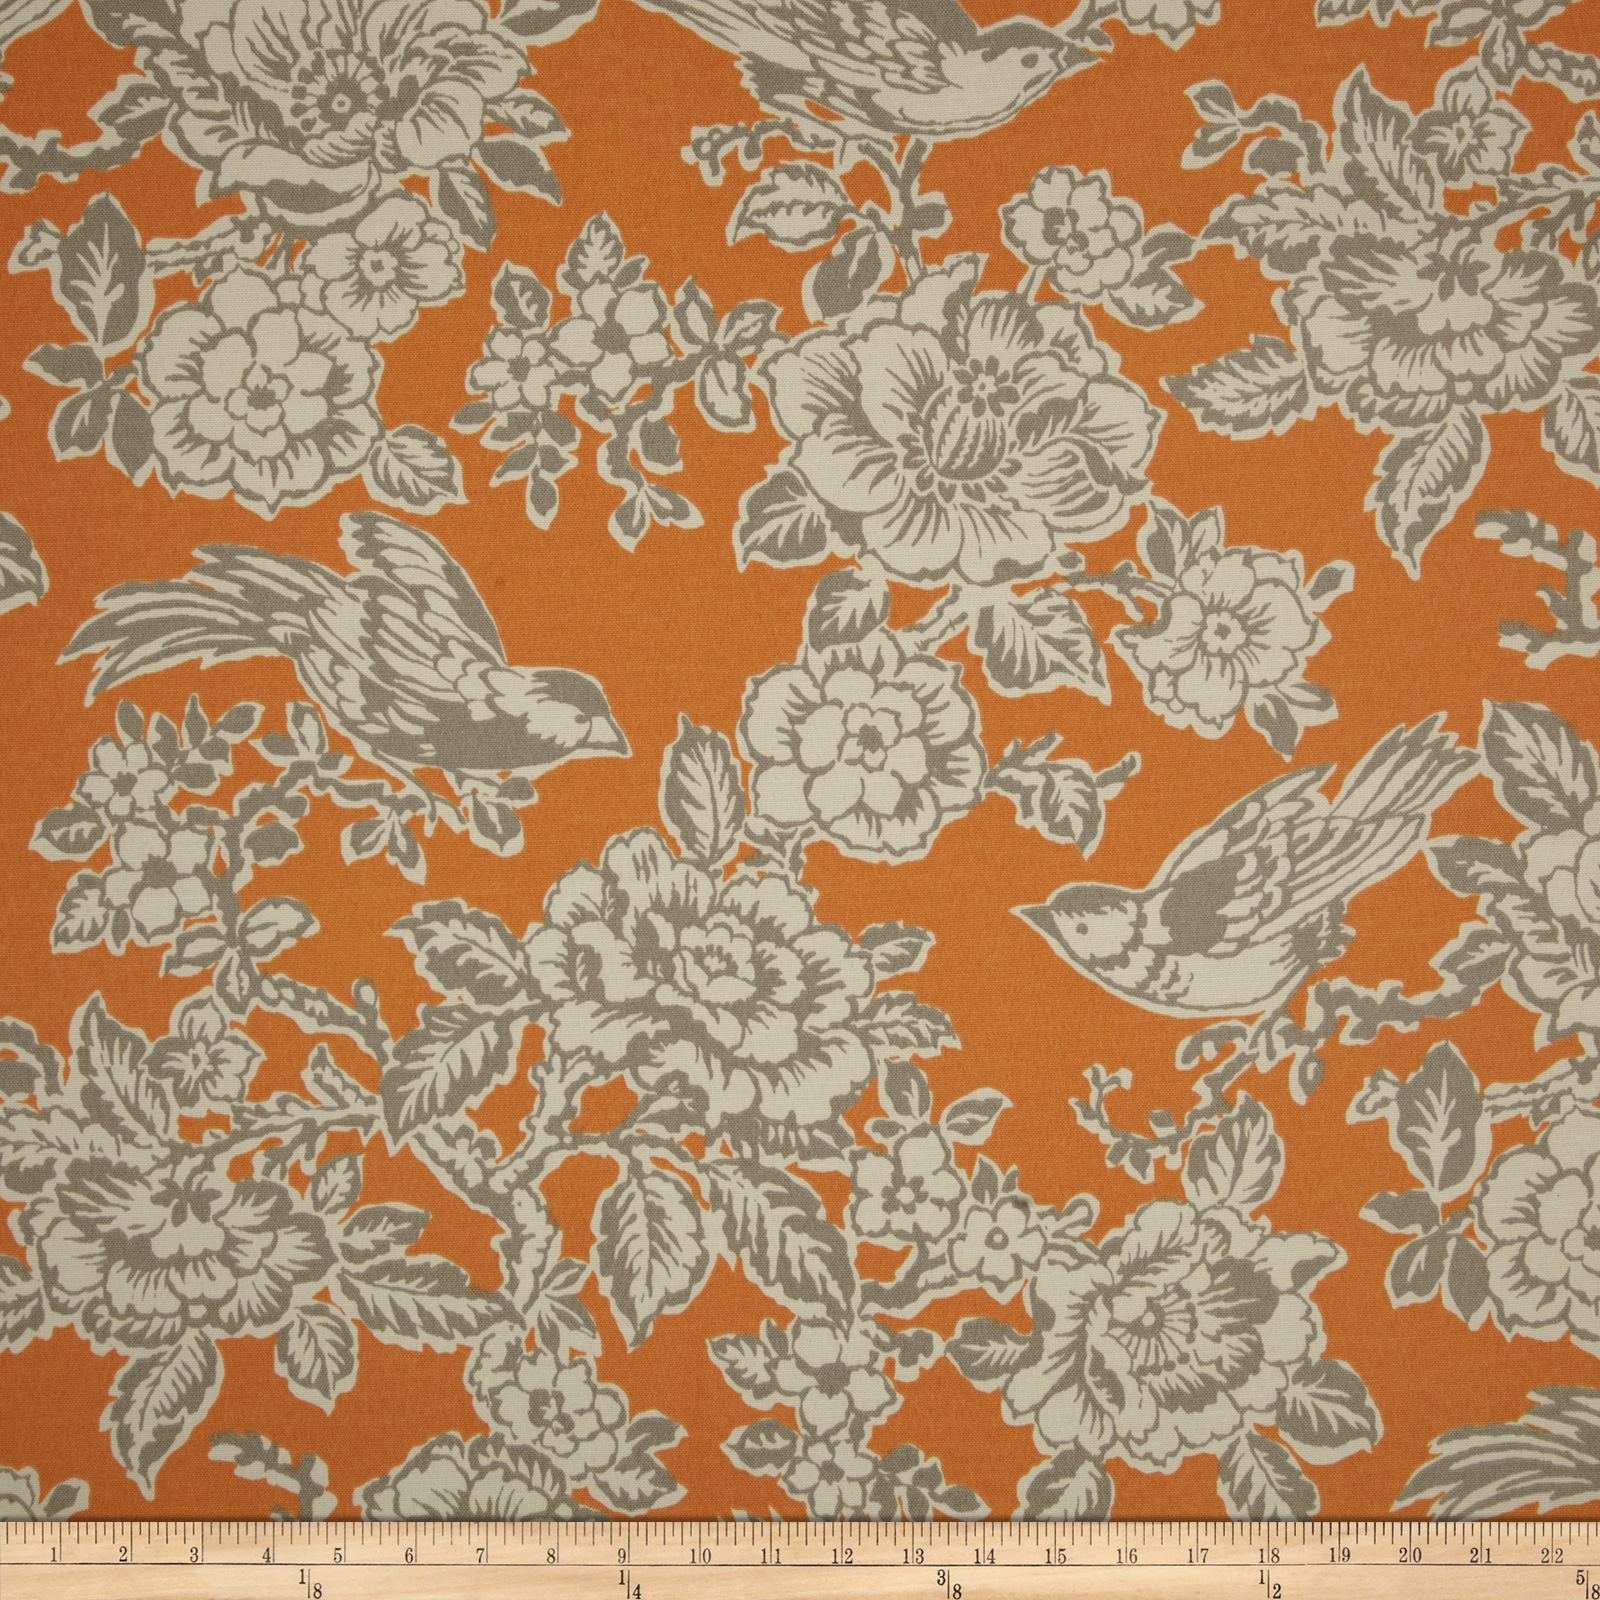 Richloom Indoor/Outdoor Goldfinch Mango Fabric by TNT in USA